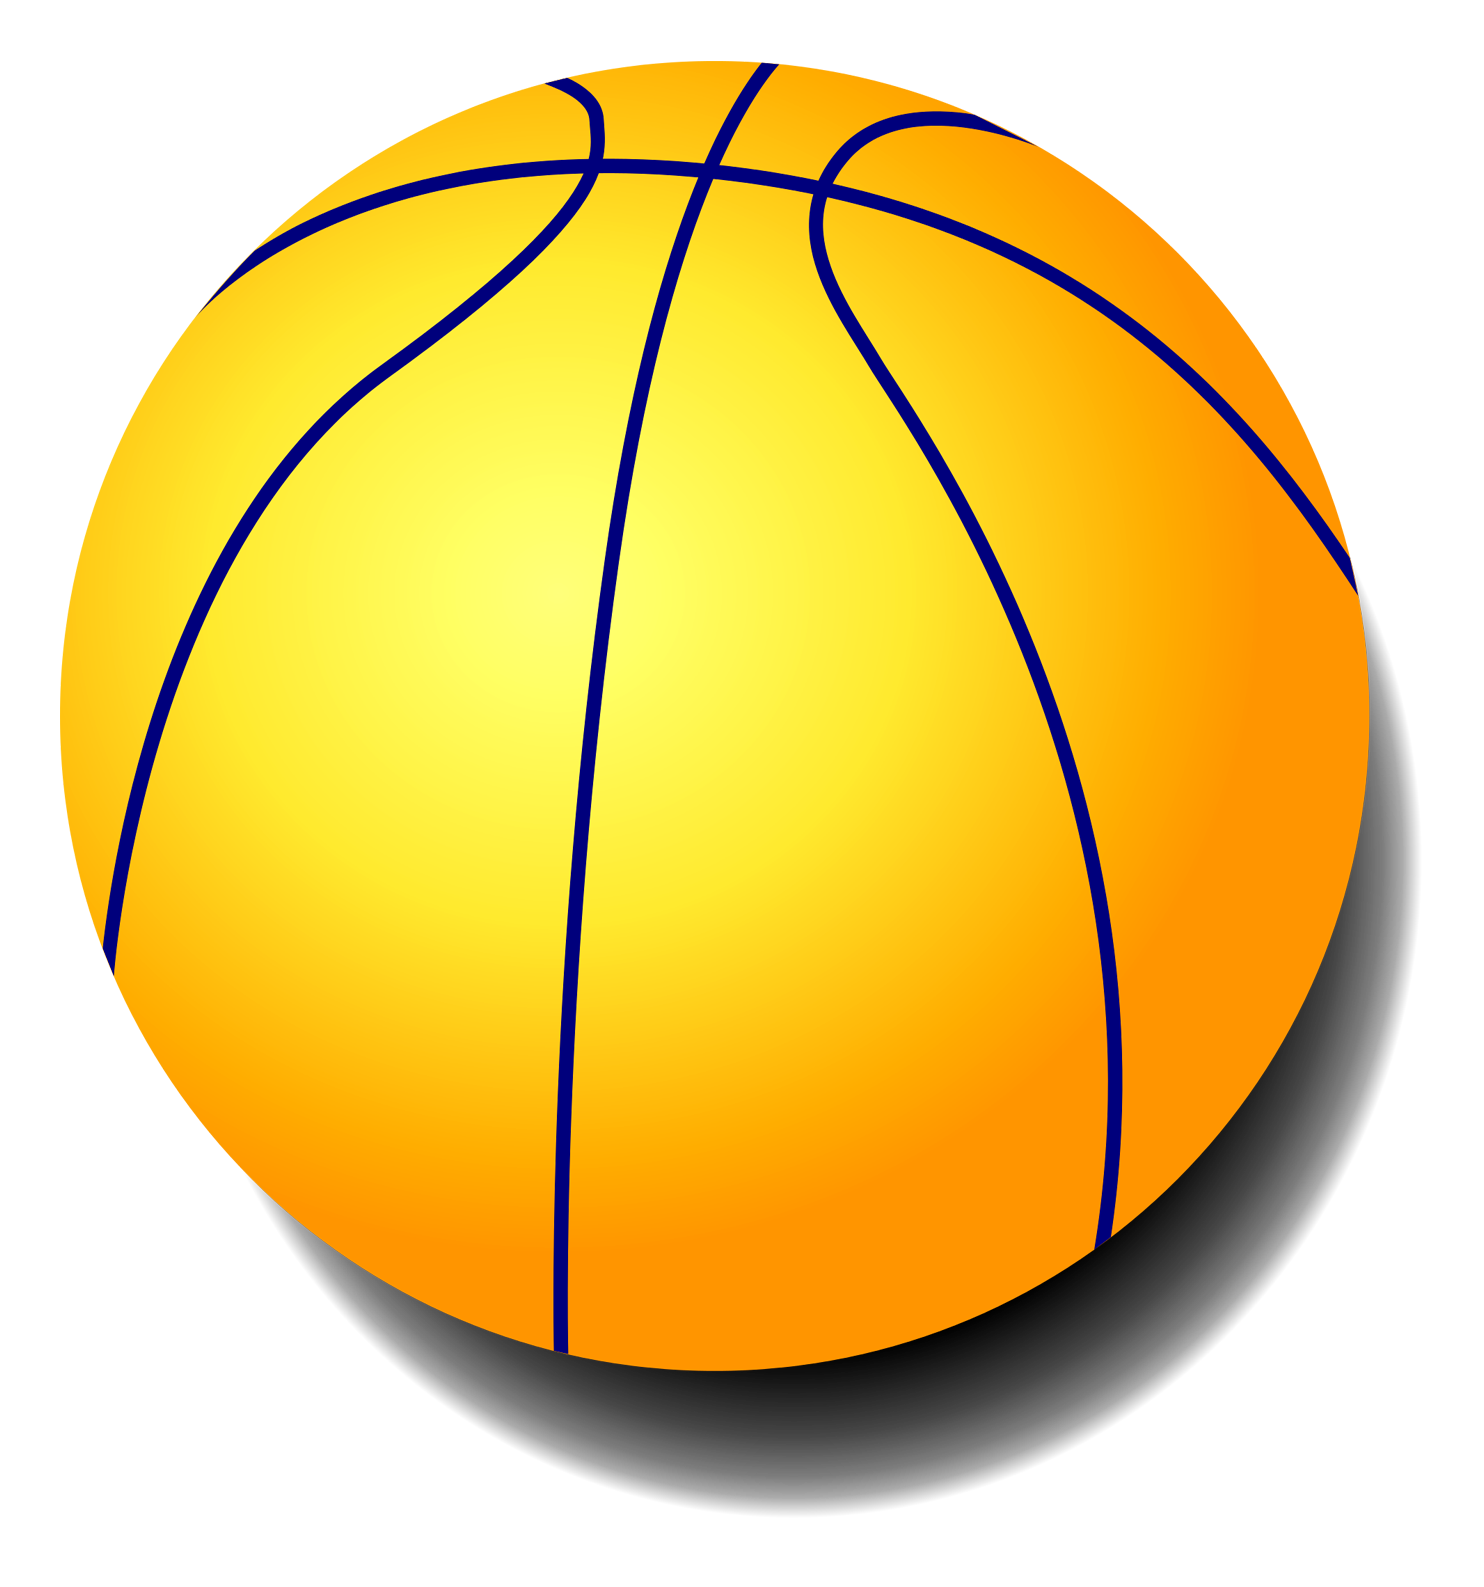 Purple clipart basketball. Png transparent images free